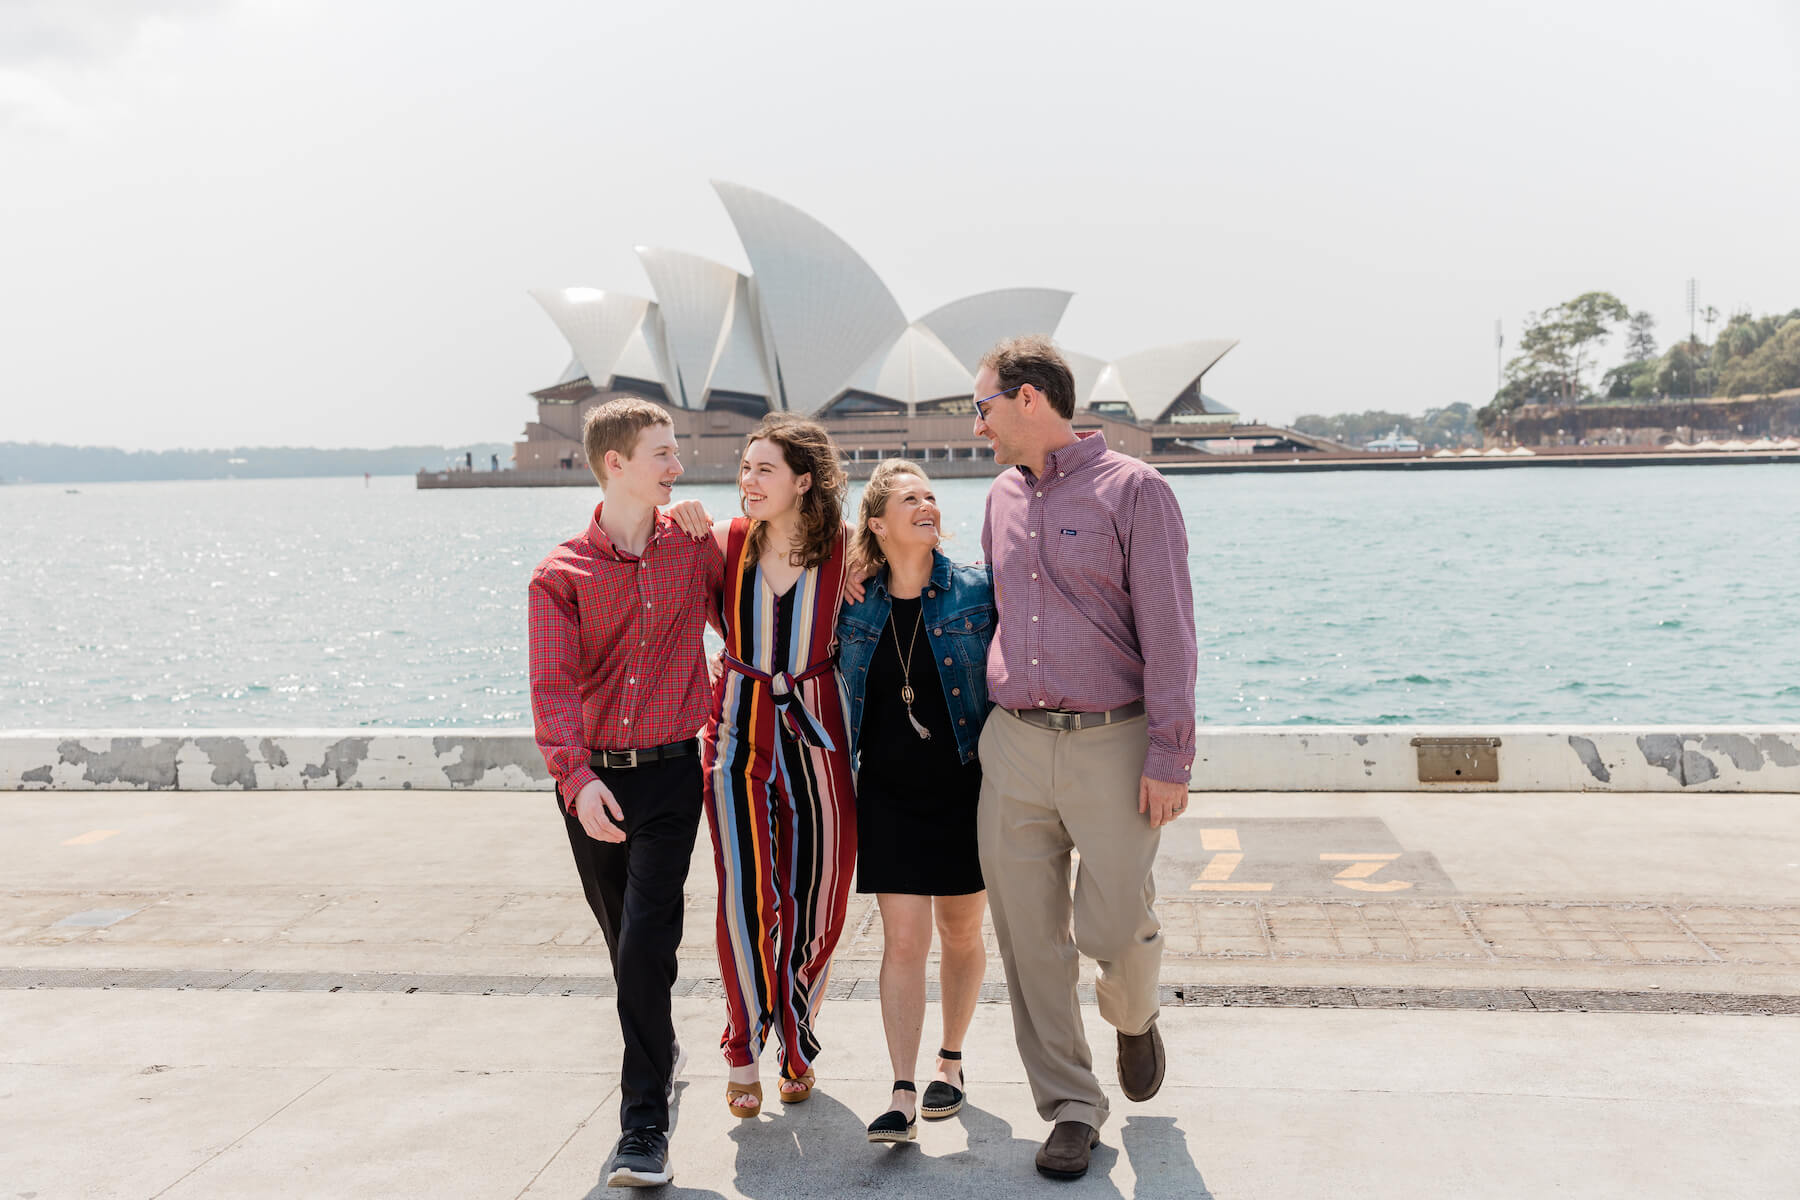 Family of 4 walking with the Sydney Opera house in Australia behind them